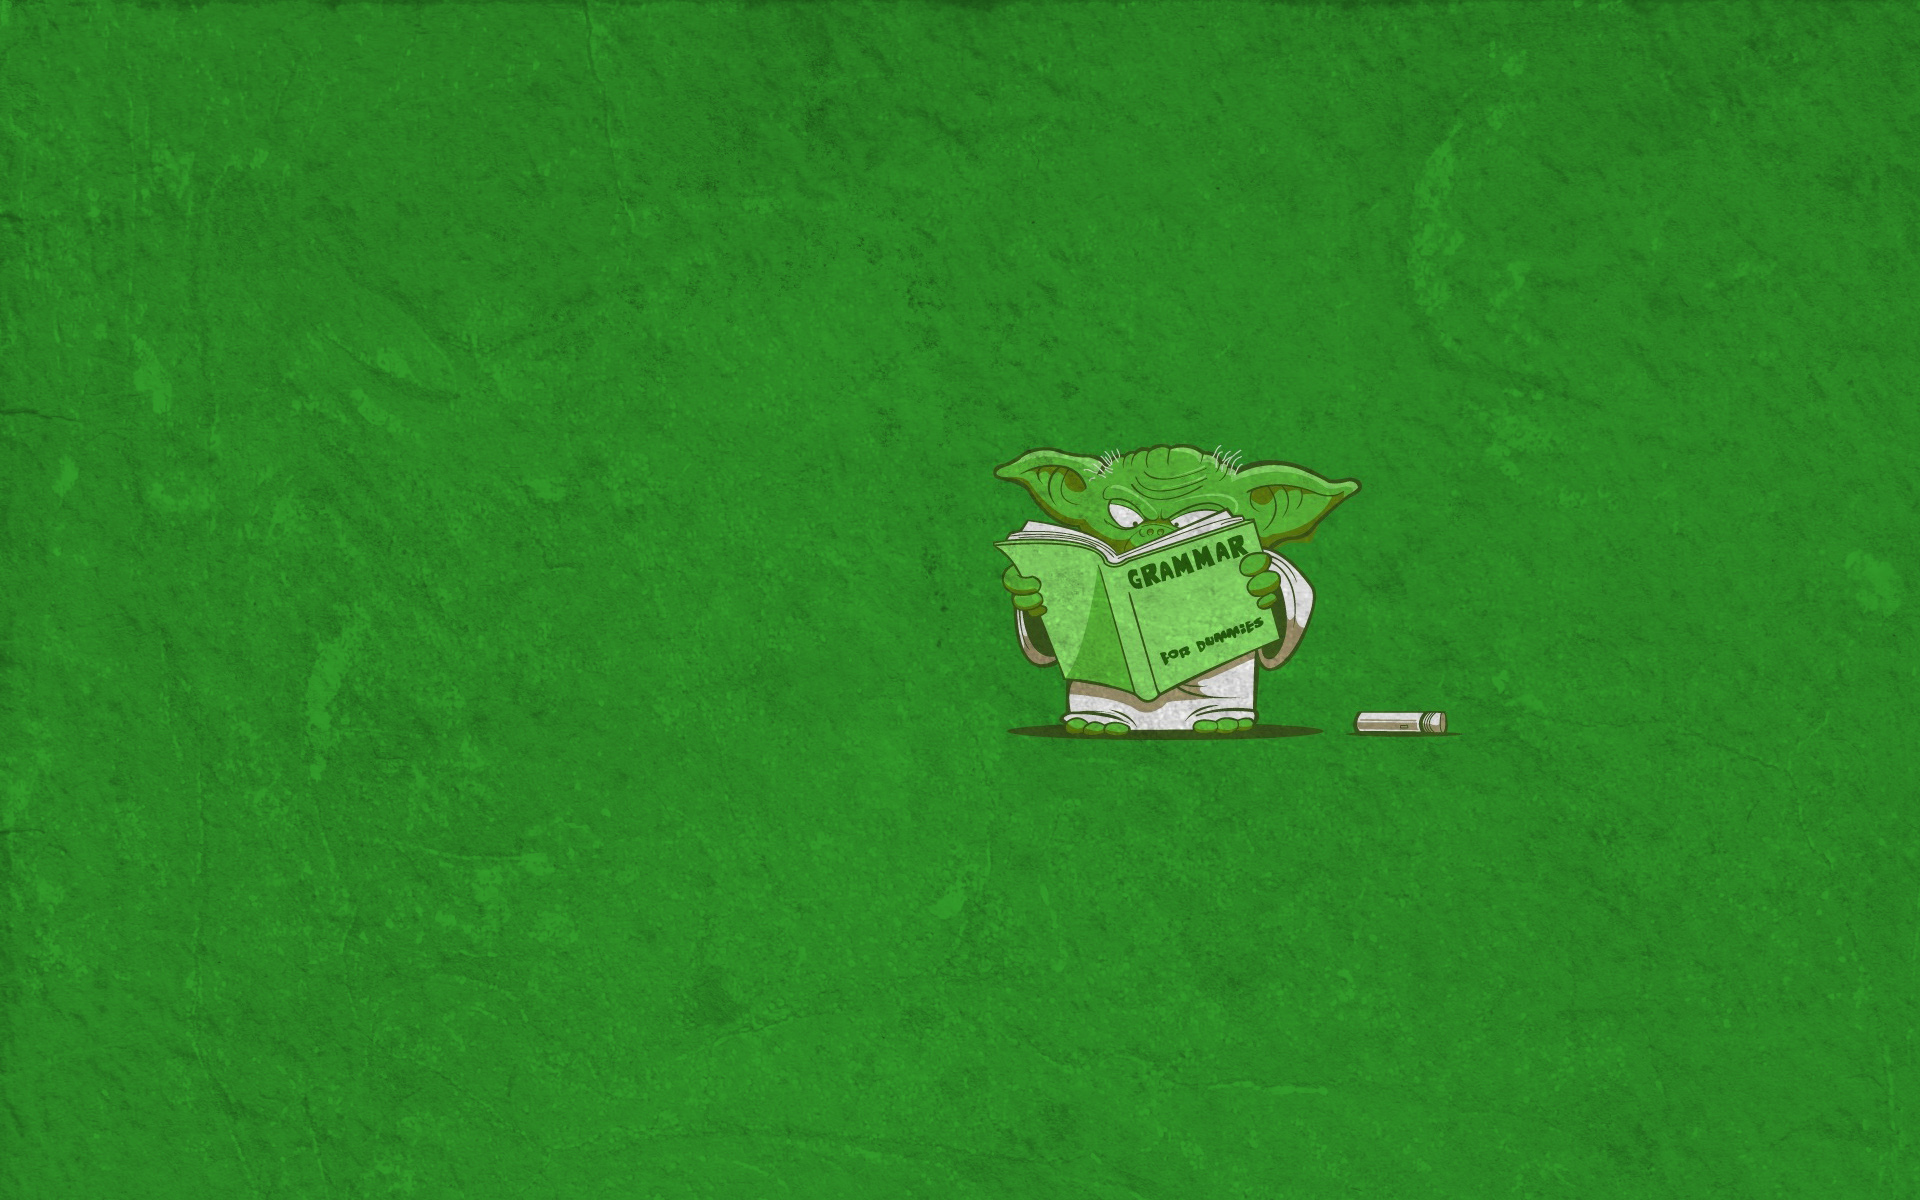 Funny star wars wallpaper wallpapersafari - Star wars quotes wallpaper ...